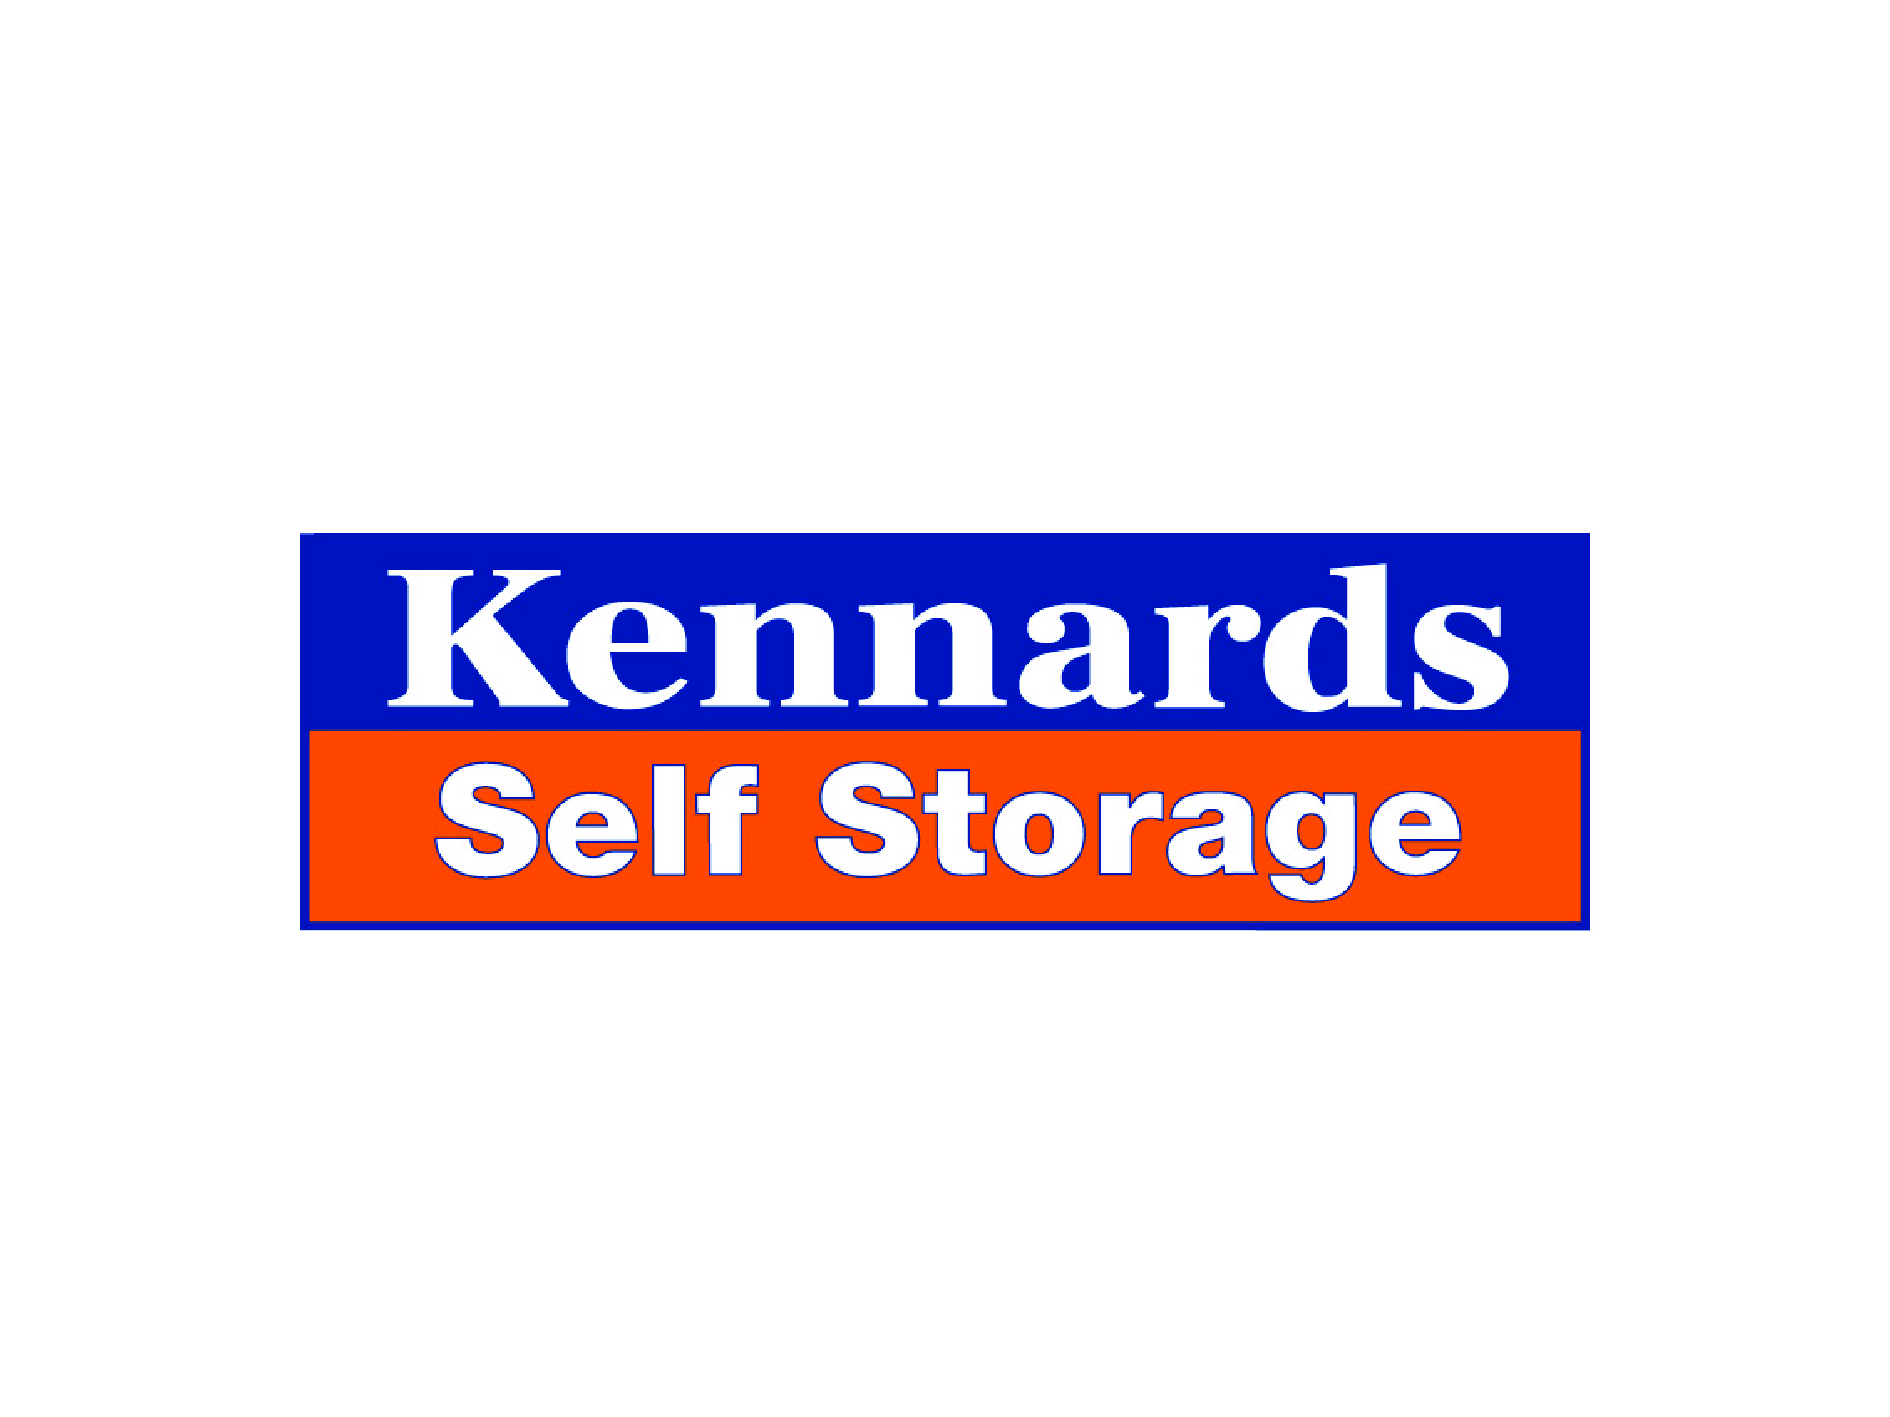 Kennards Self Storage provides hundreds of strong, large boxes for our packs. They are also the main drop off point for donations in Wellington. Learn more about Kennards  here .